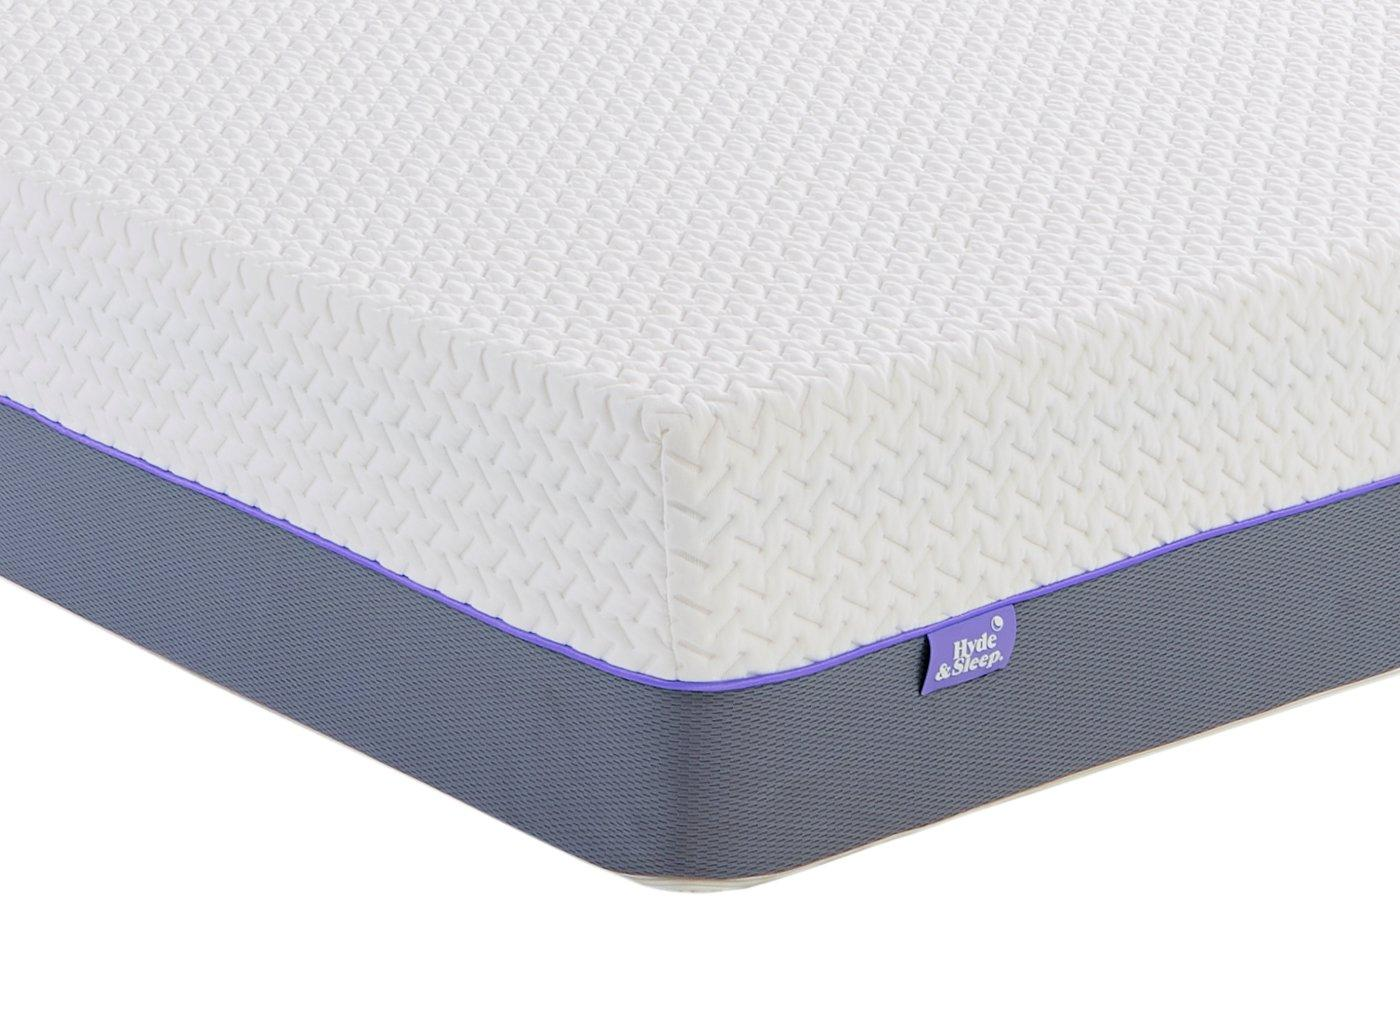 Hyde & sleep hybrid lilac mattress 3'0 single